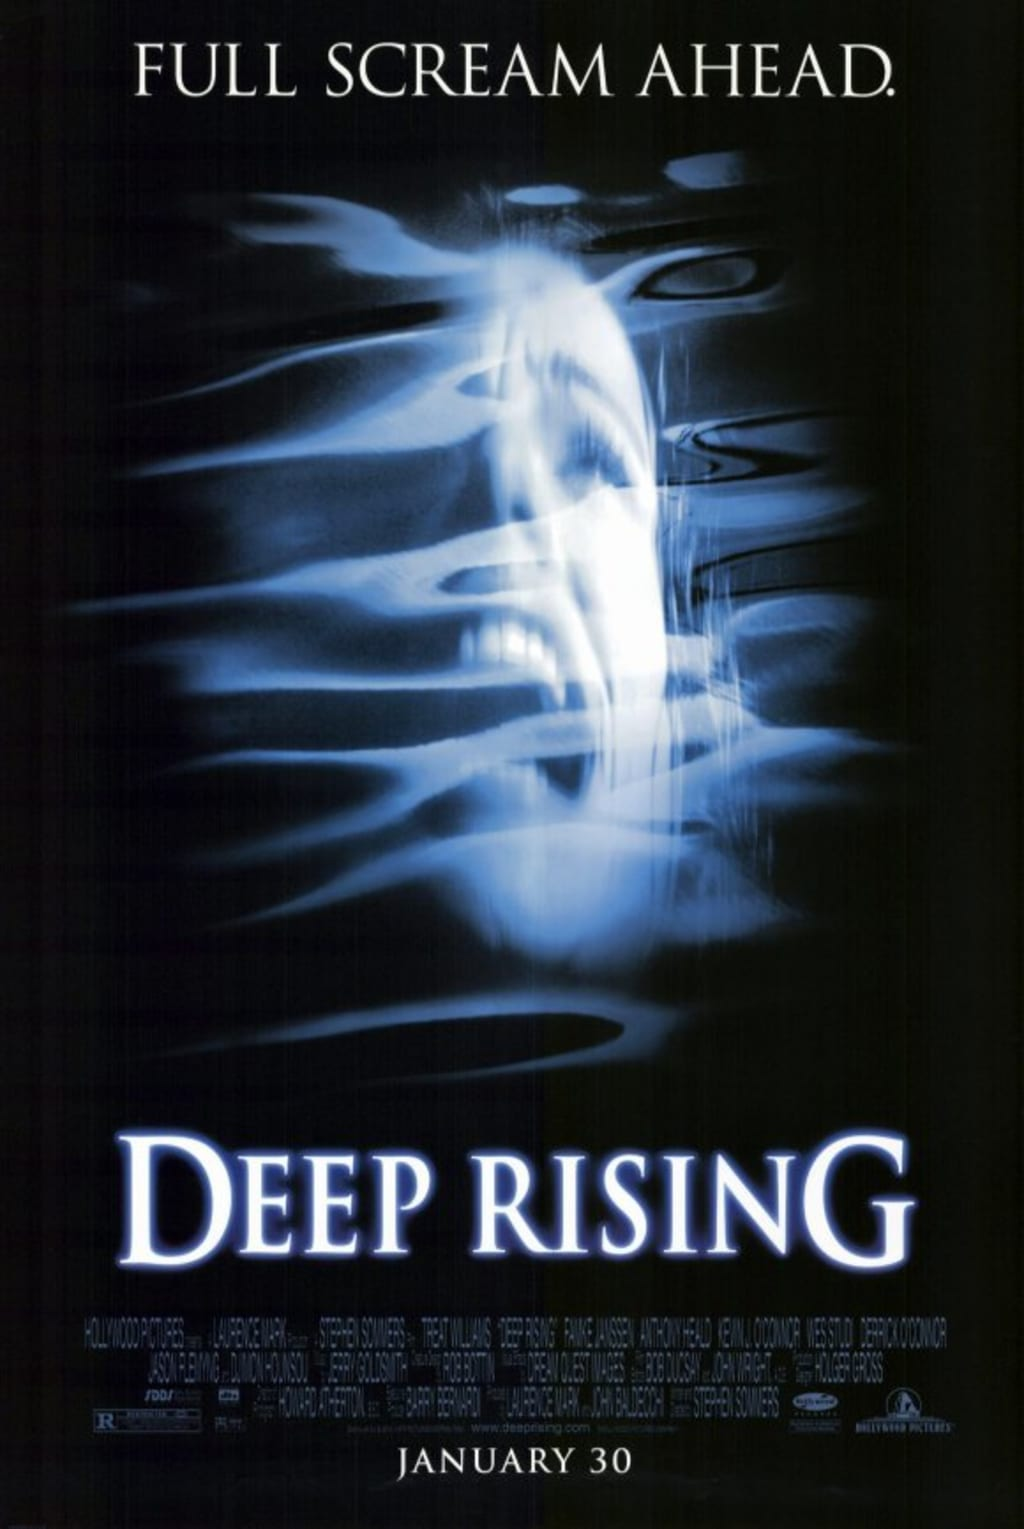 My Boyfriend Makes Me Watch Ridiculous Movies: 'Deep Rising'